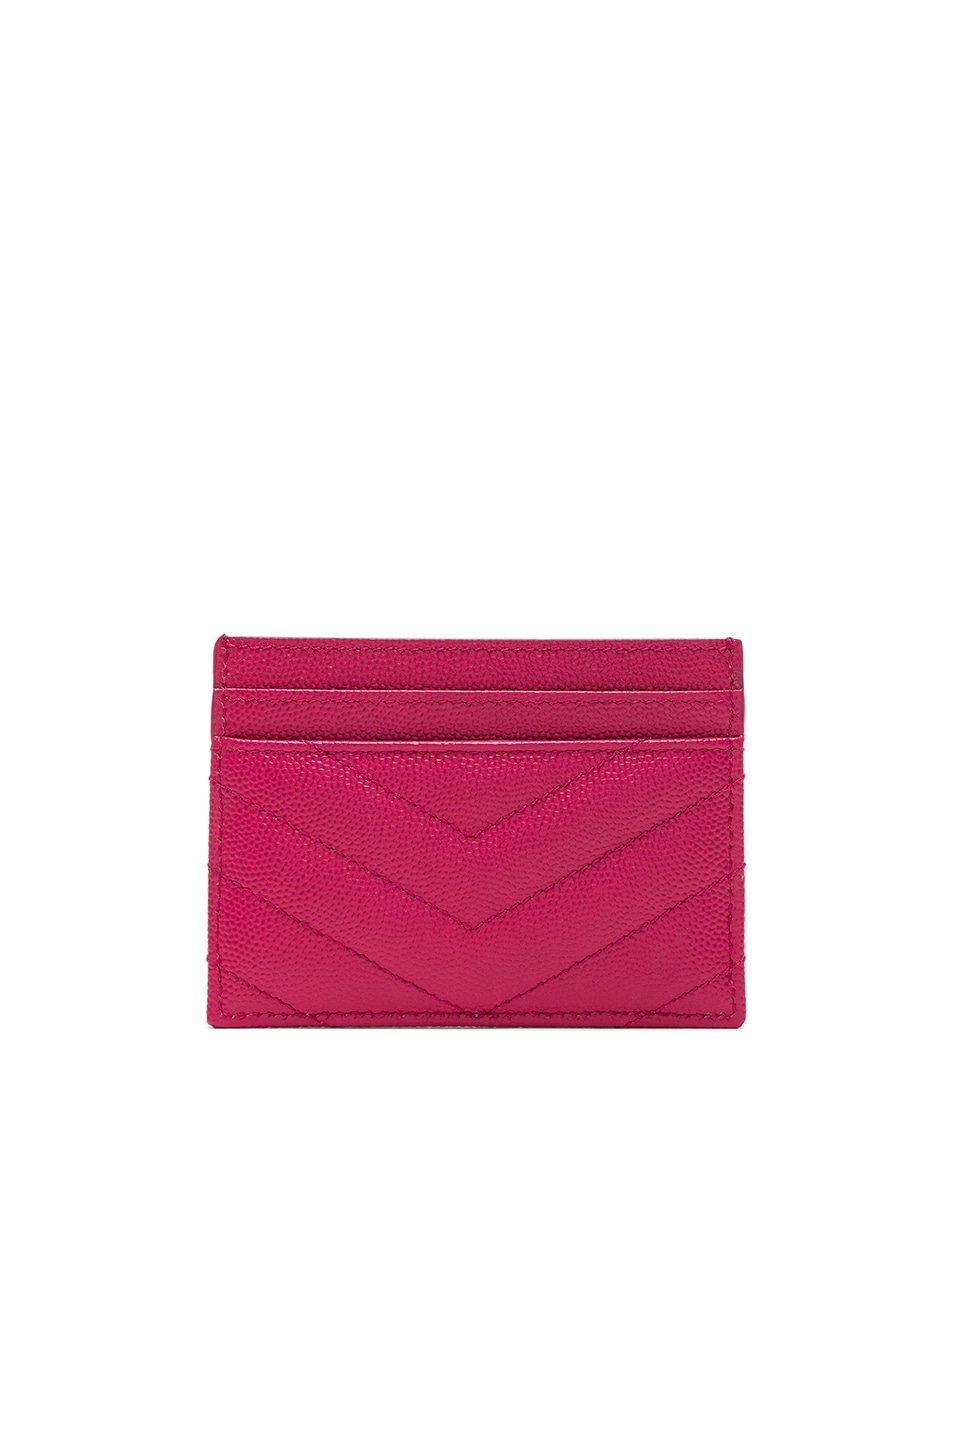 Image 2 of Saint Laurent Monogramme Card Case in Shocking Pink